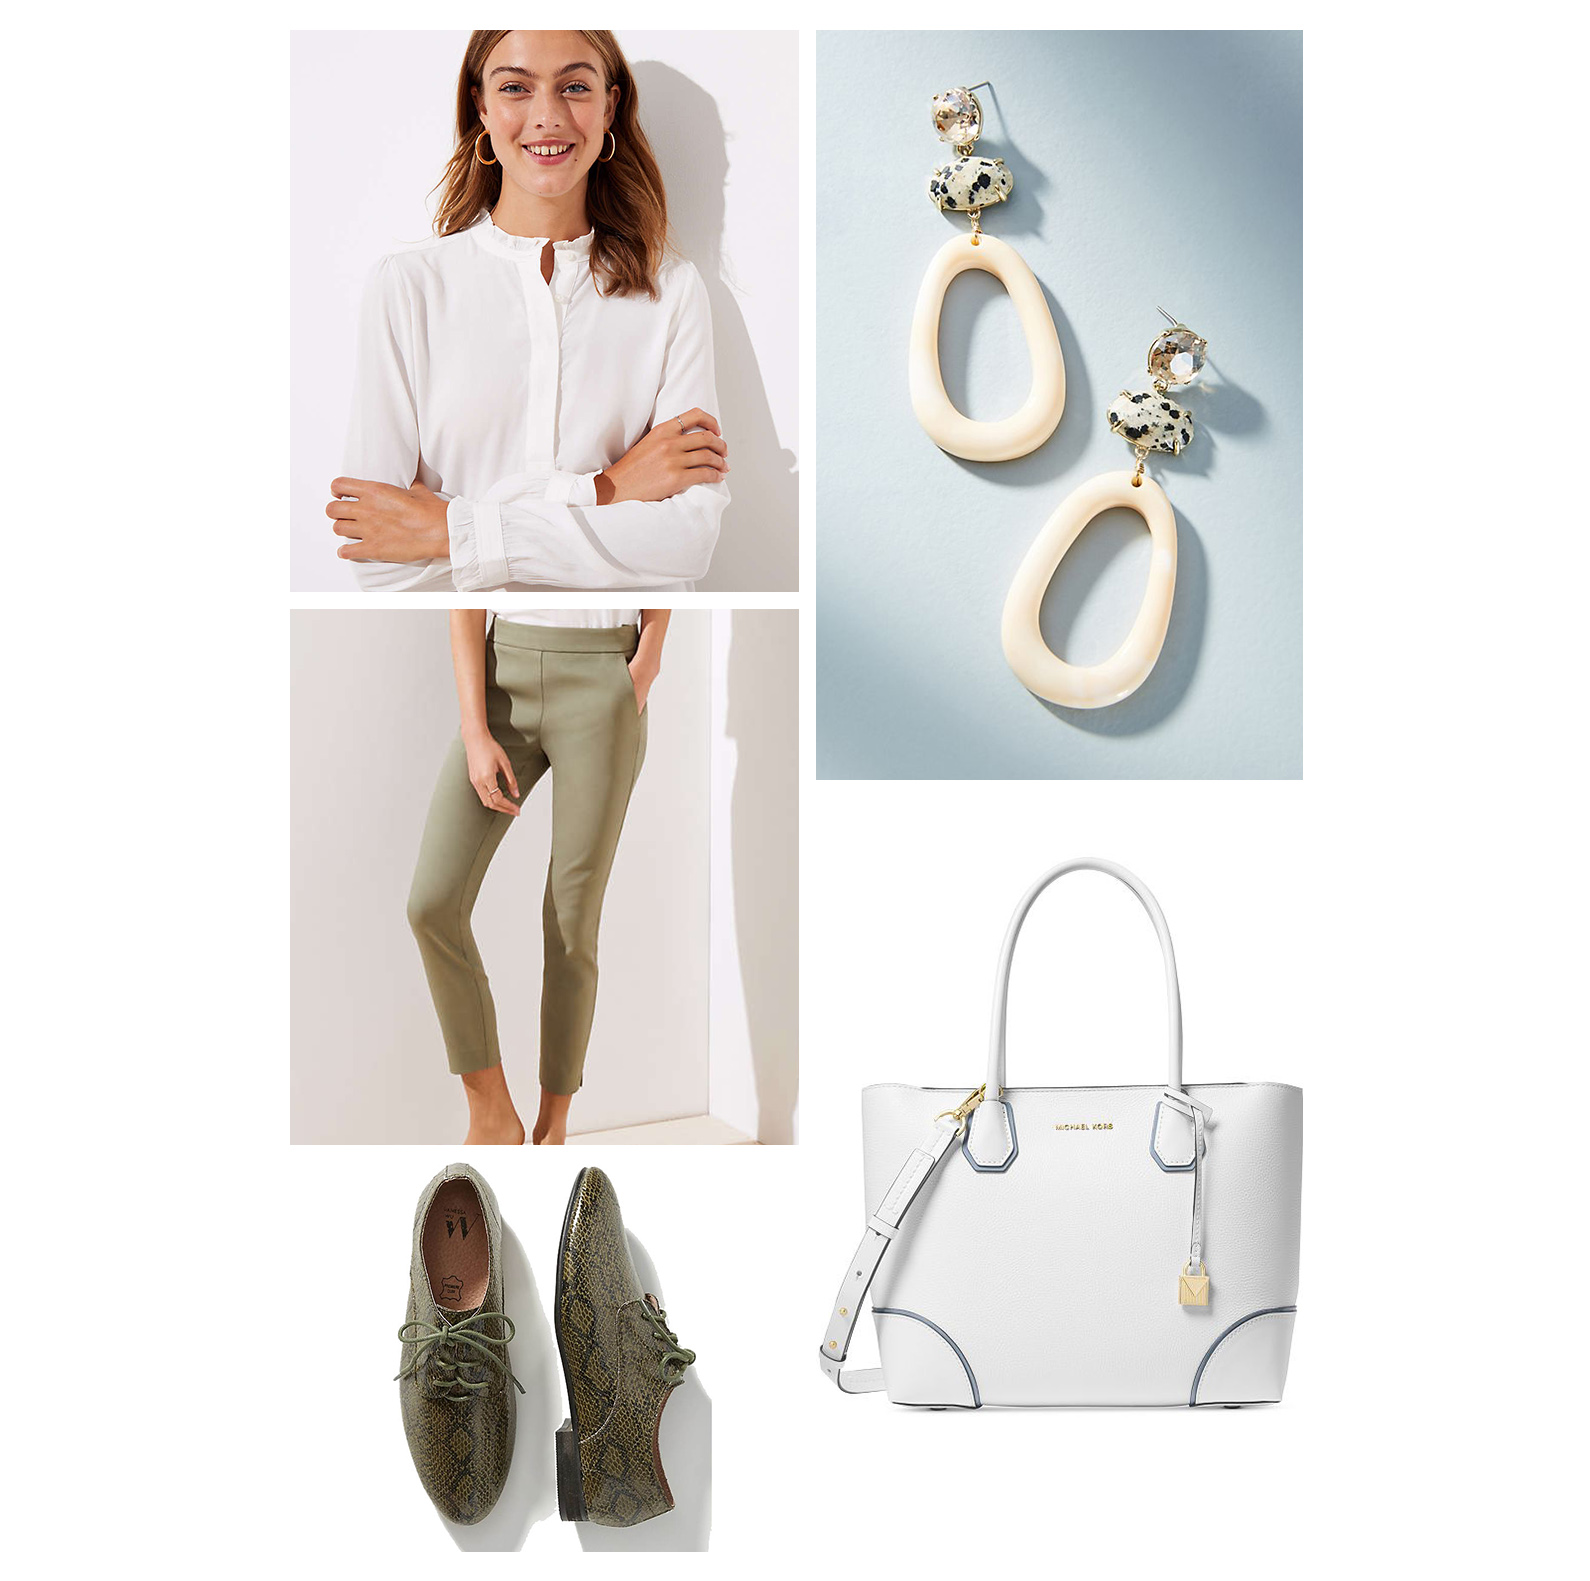 fall-autumn-outfit-work-2018-fashion-ideas-olive-green-slim-pants-white-top-drop-statement-earrings-tote-snakeskin-loafers-brogues-office.jpg